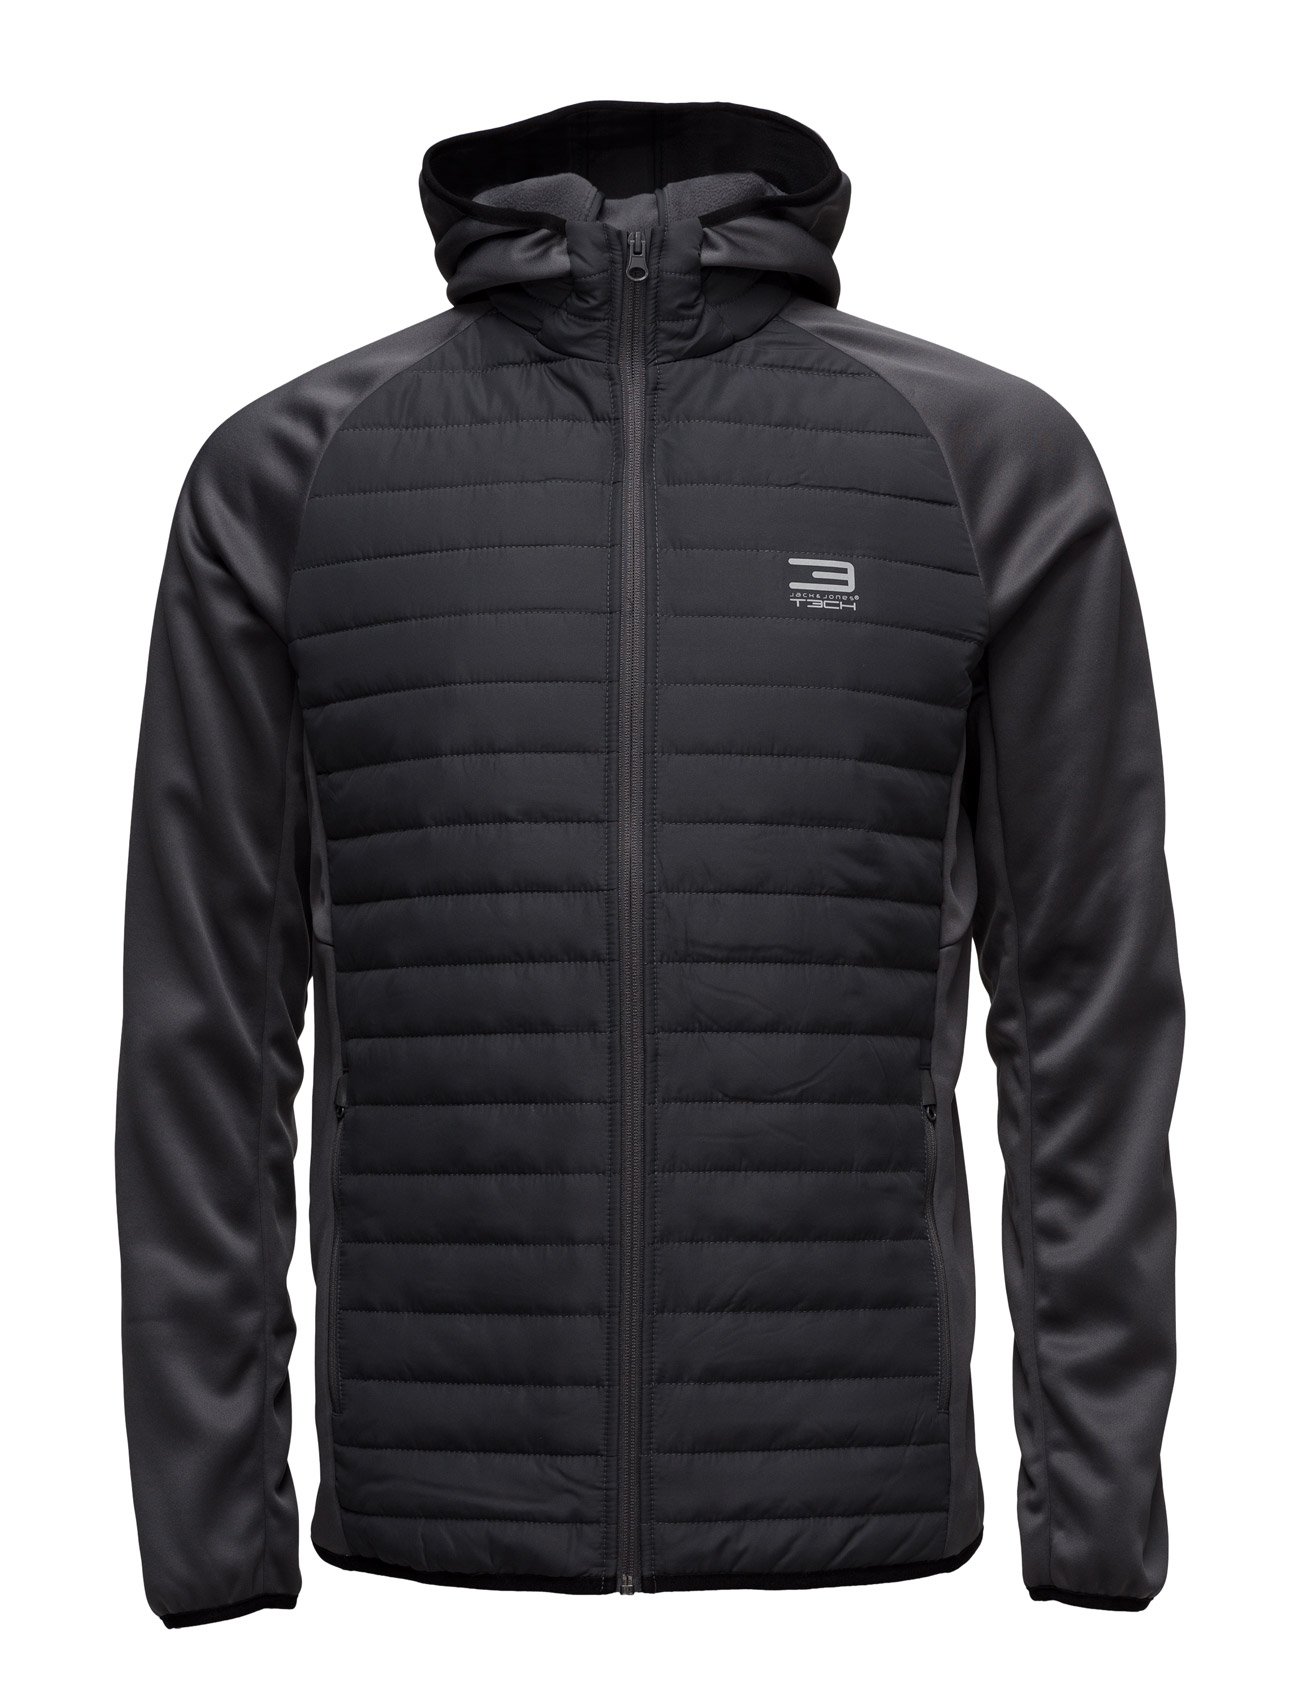 jack & jones tech – Jjtmulti quilted jacket på boozt.com dk